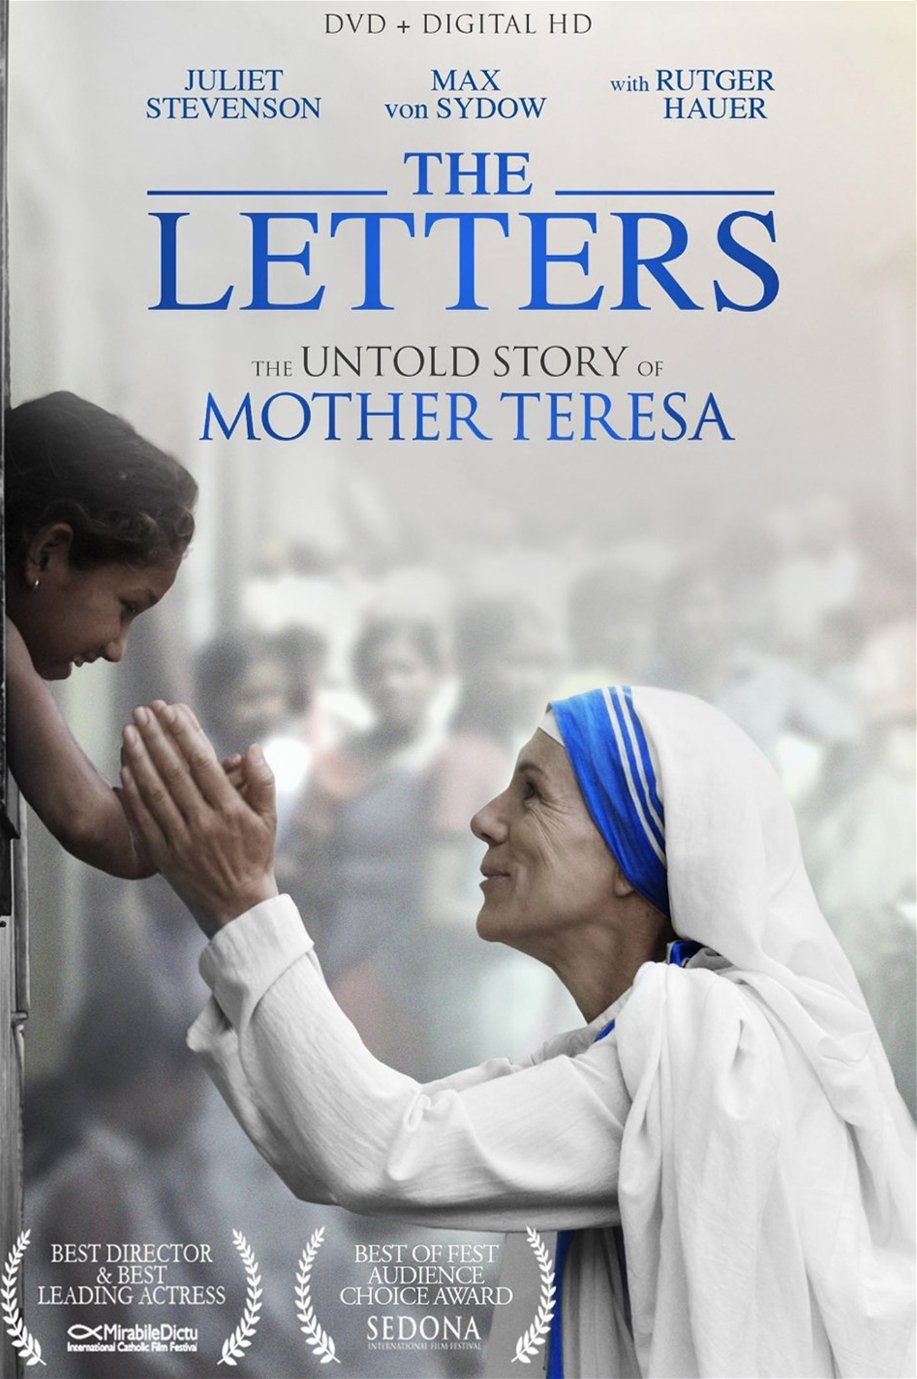 The Letters: The Untold Story of Mother Teresa DVD - Unique Catholic Gifts